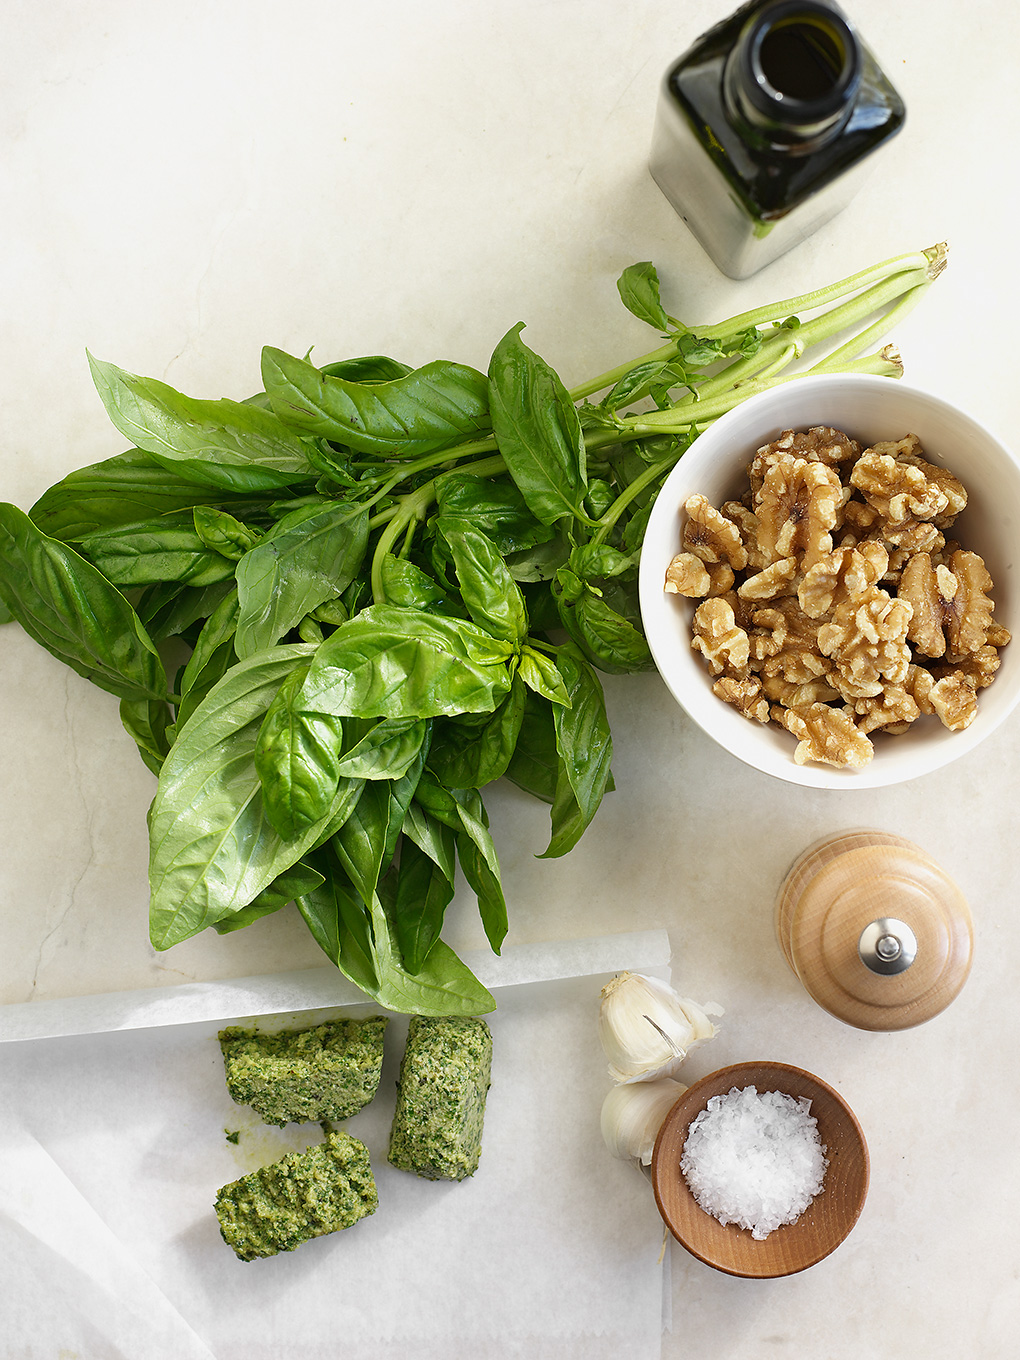 Fresh Basil on Cutting Board with Nuts